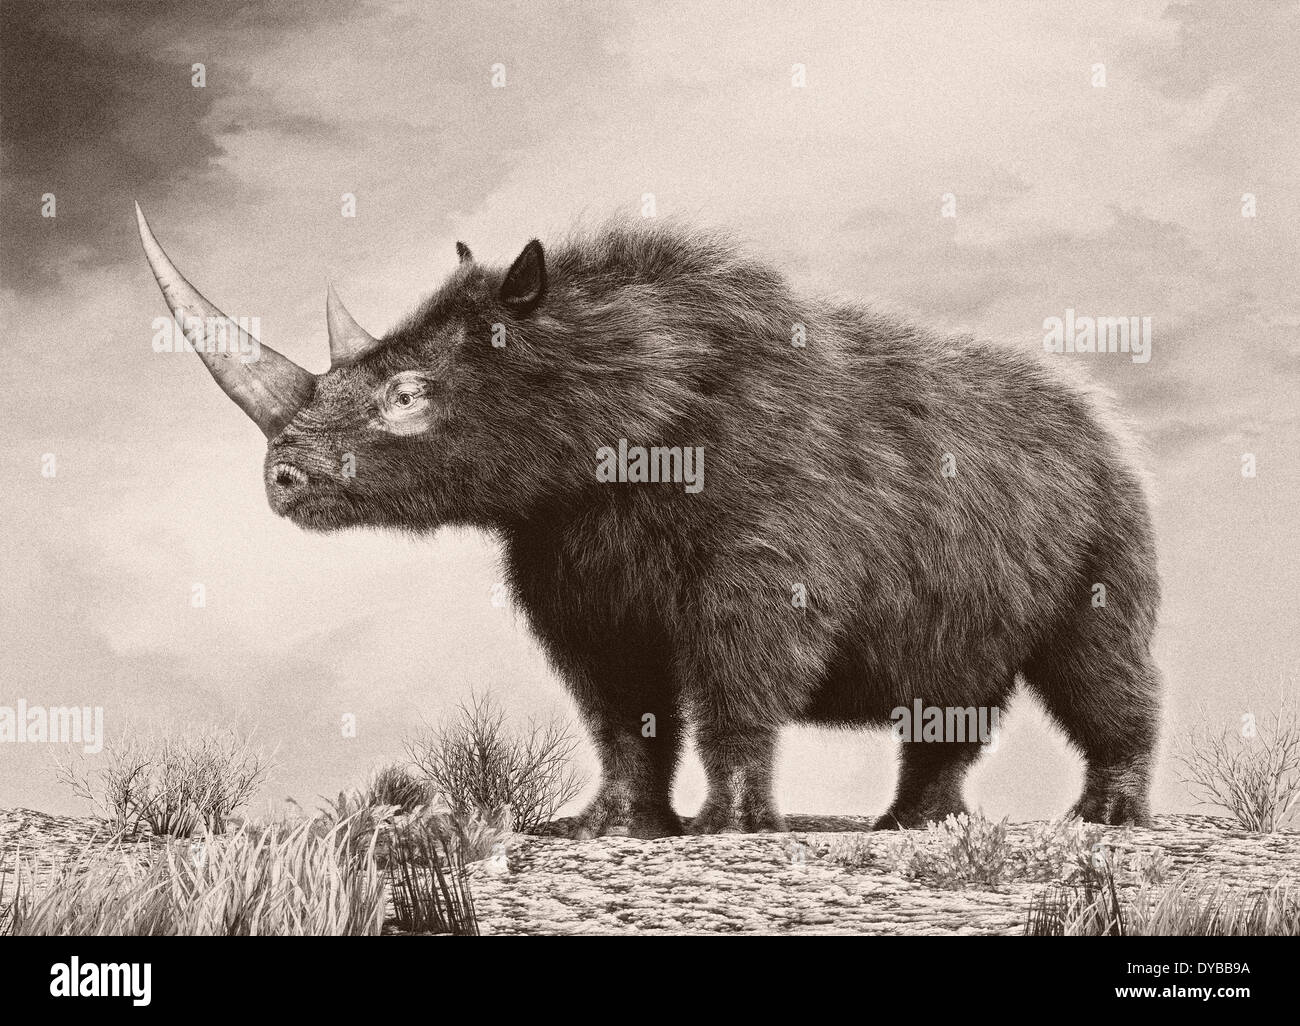 The woolly rhinoceros is an extinct species from the Pleistocene epoch. - Stock Image